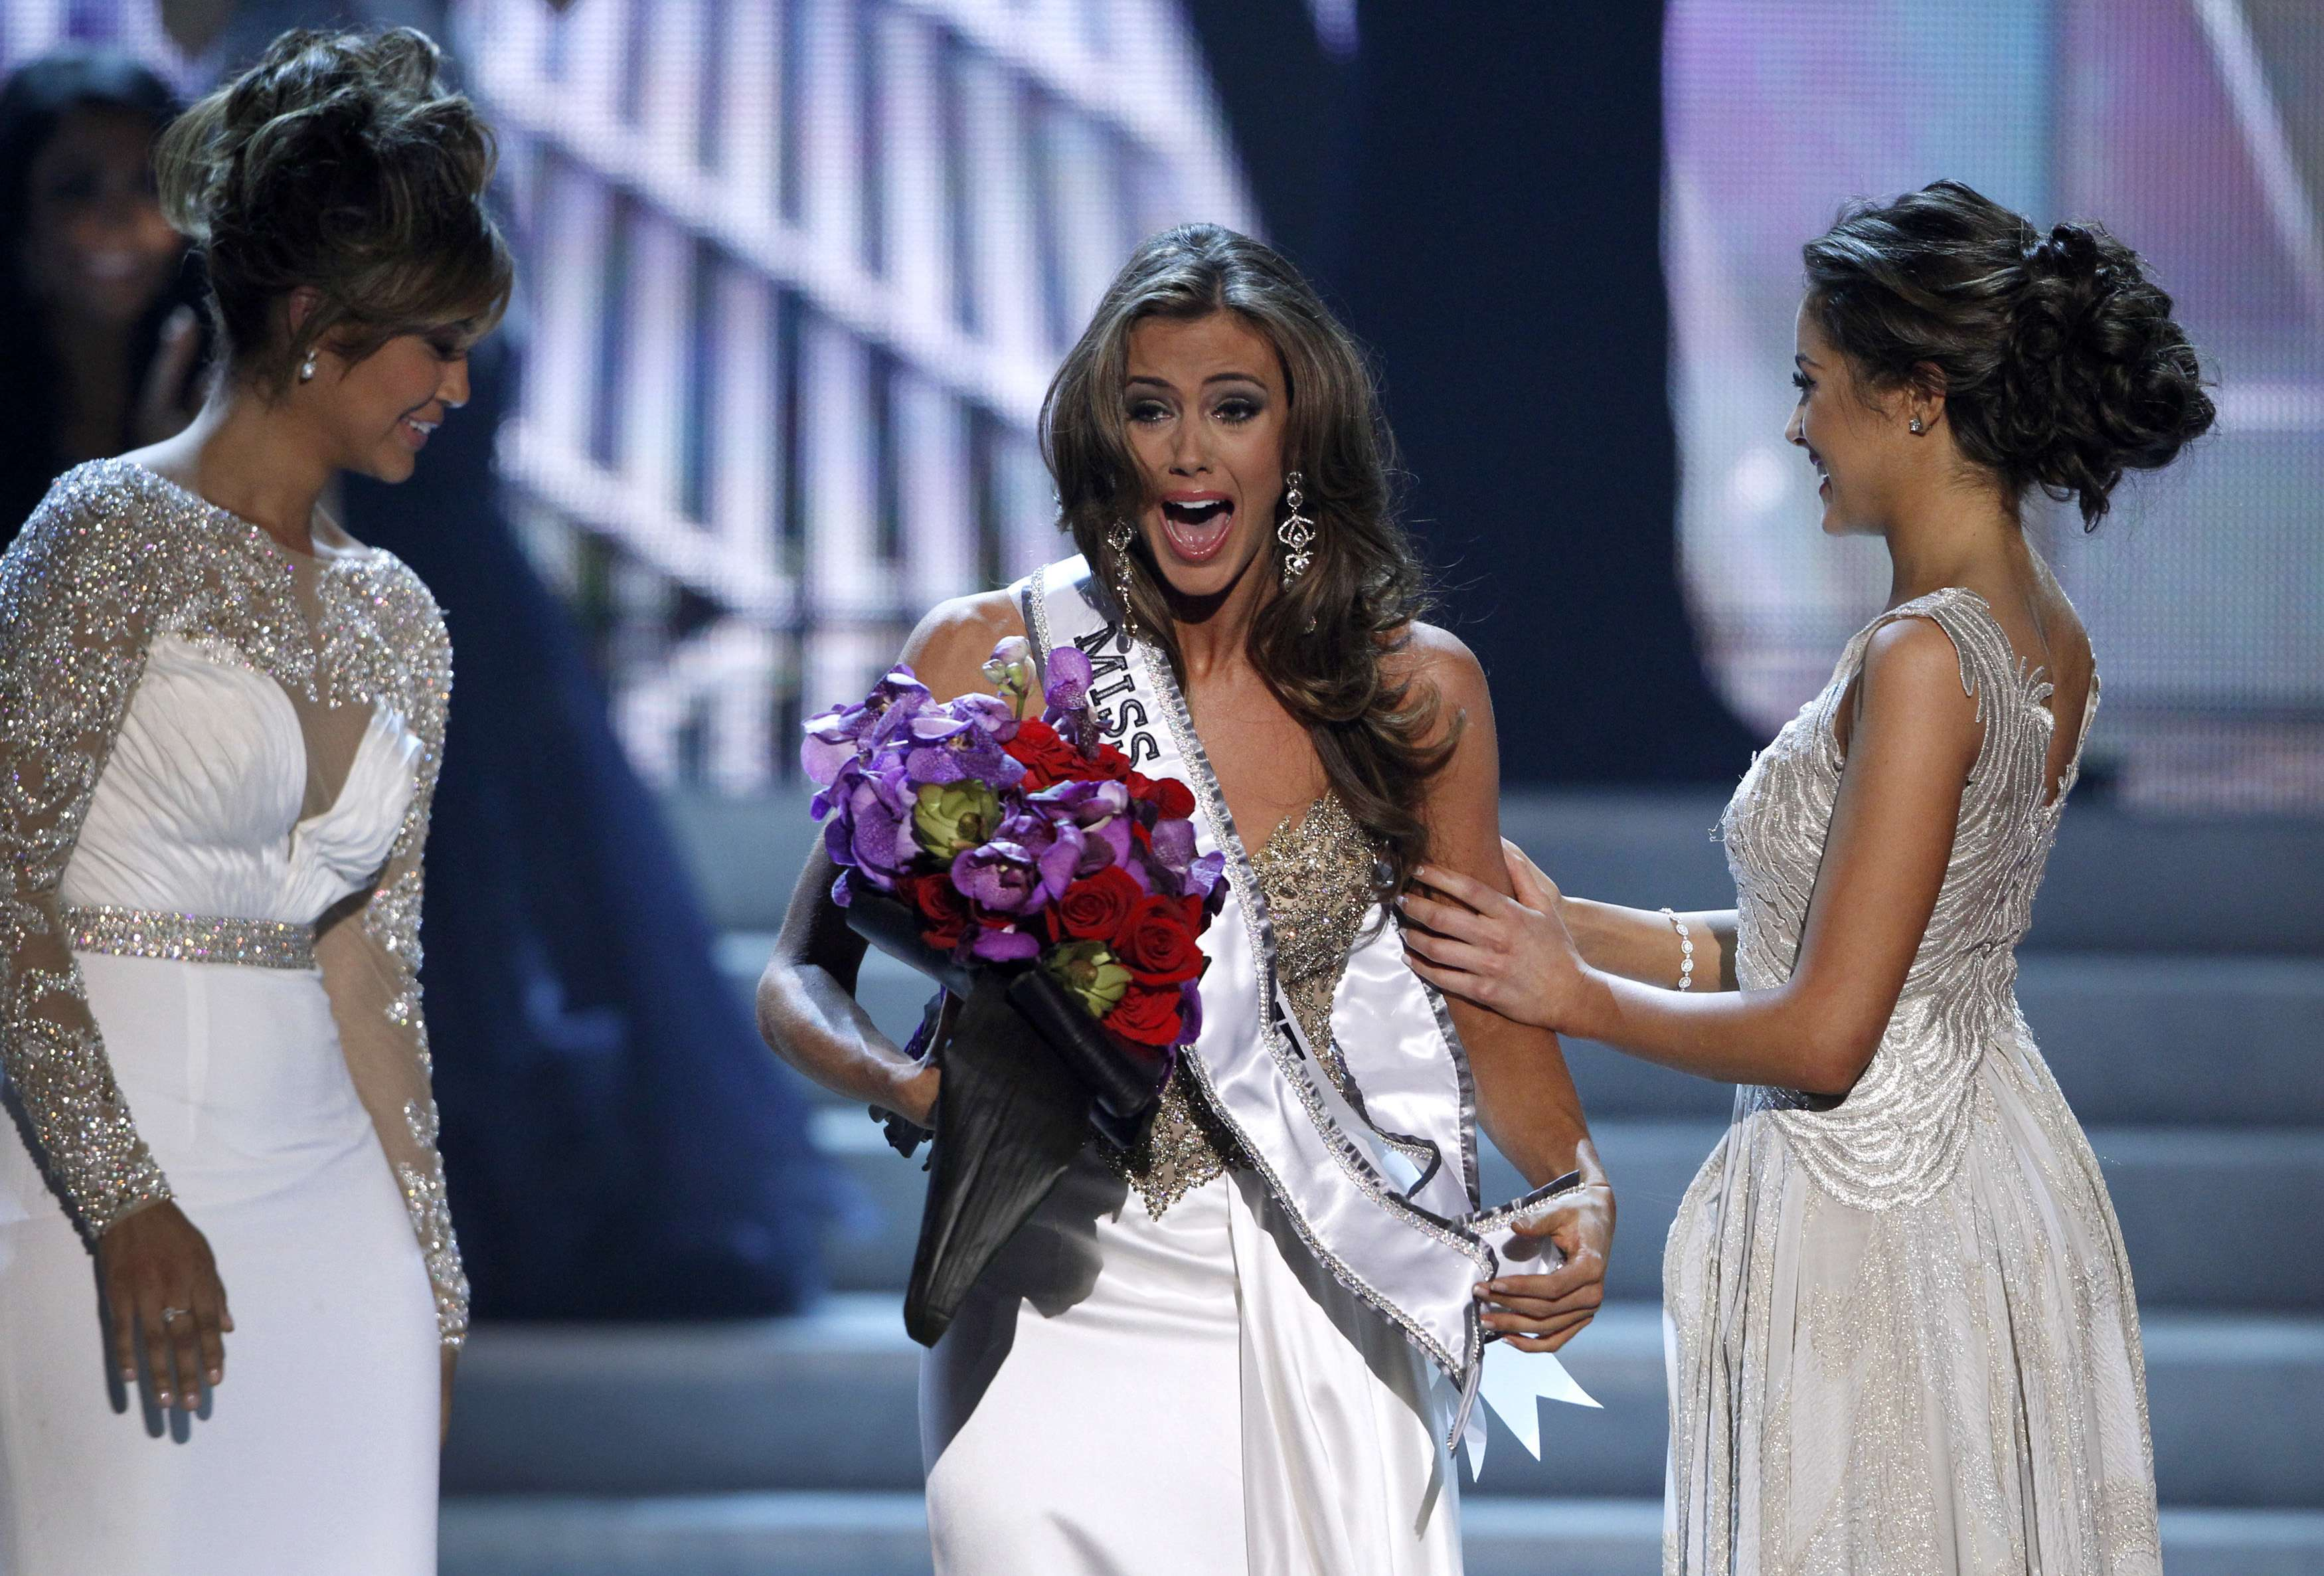 Miss Connecticut Erin Brady competes in the swimsuit portion of the Miss USA pageant at the Planet Hollywood Resort and Casino in Las Vegas, Nevada June 16, 2013. Brady was later crowned Miss USA 2013.